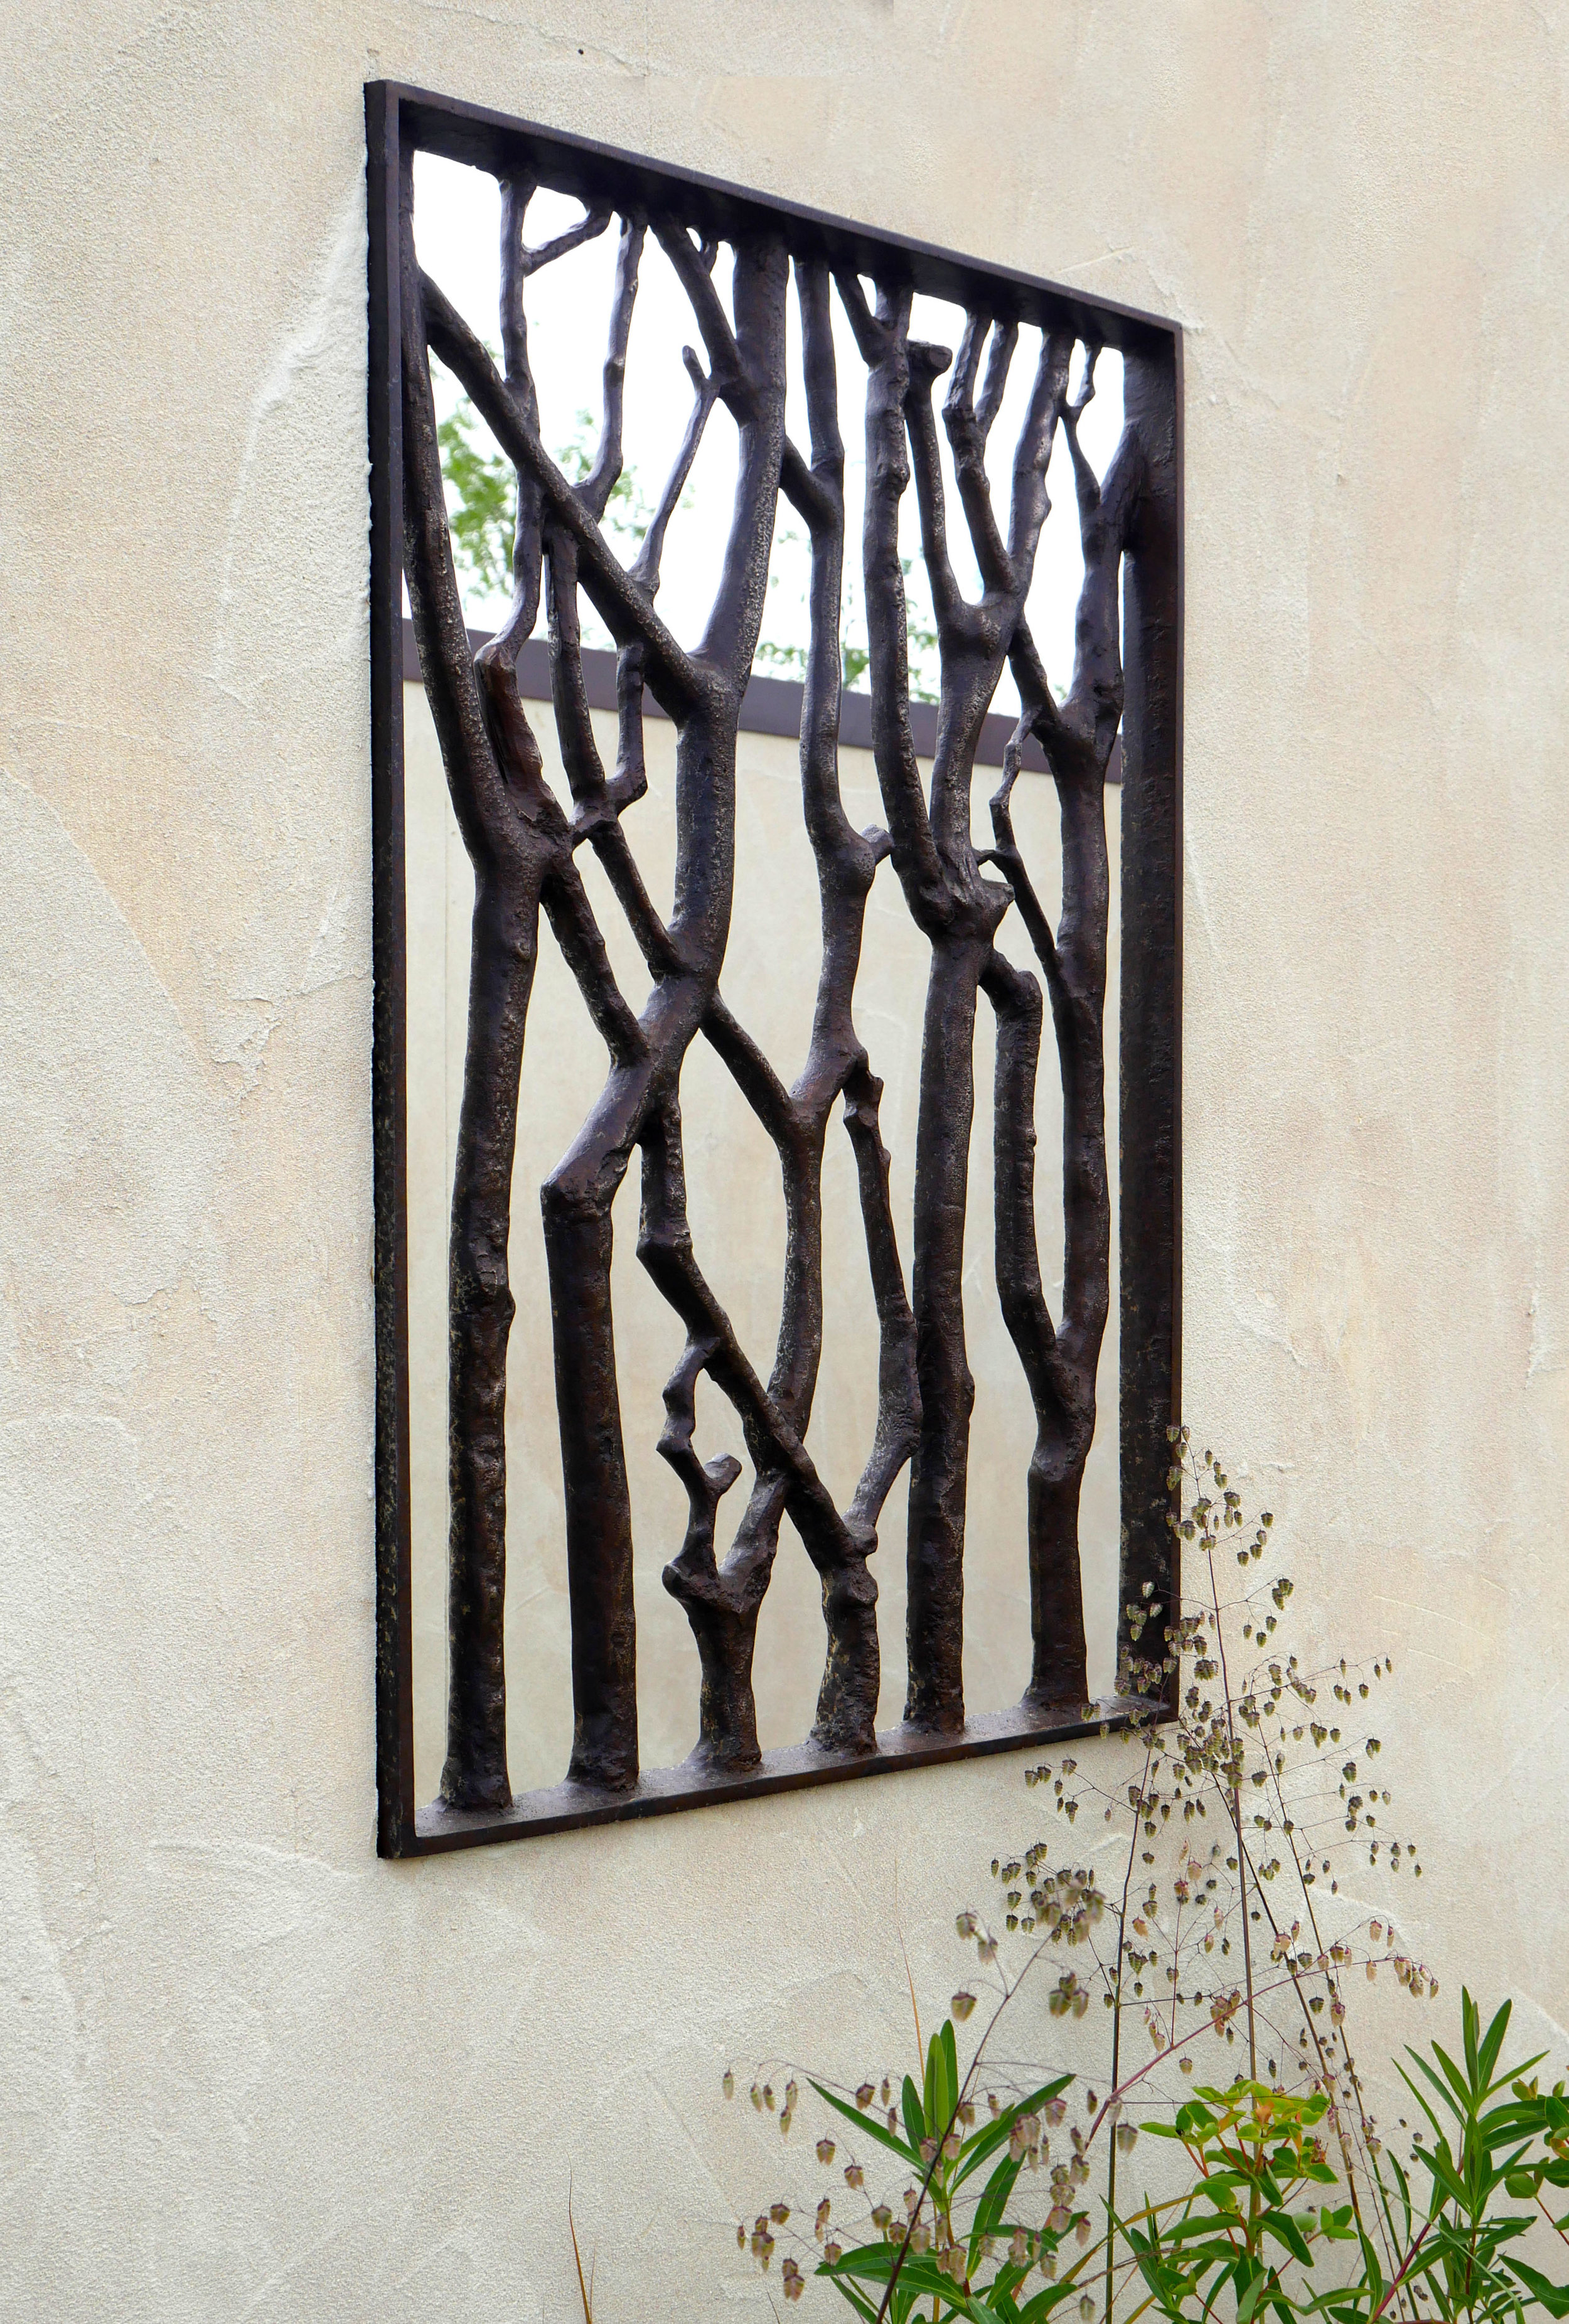 - Cast silicone bronze grille with patinated finish.Height 590mmWidth 395mm£800